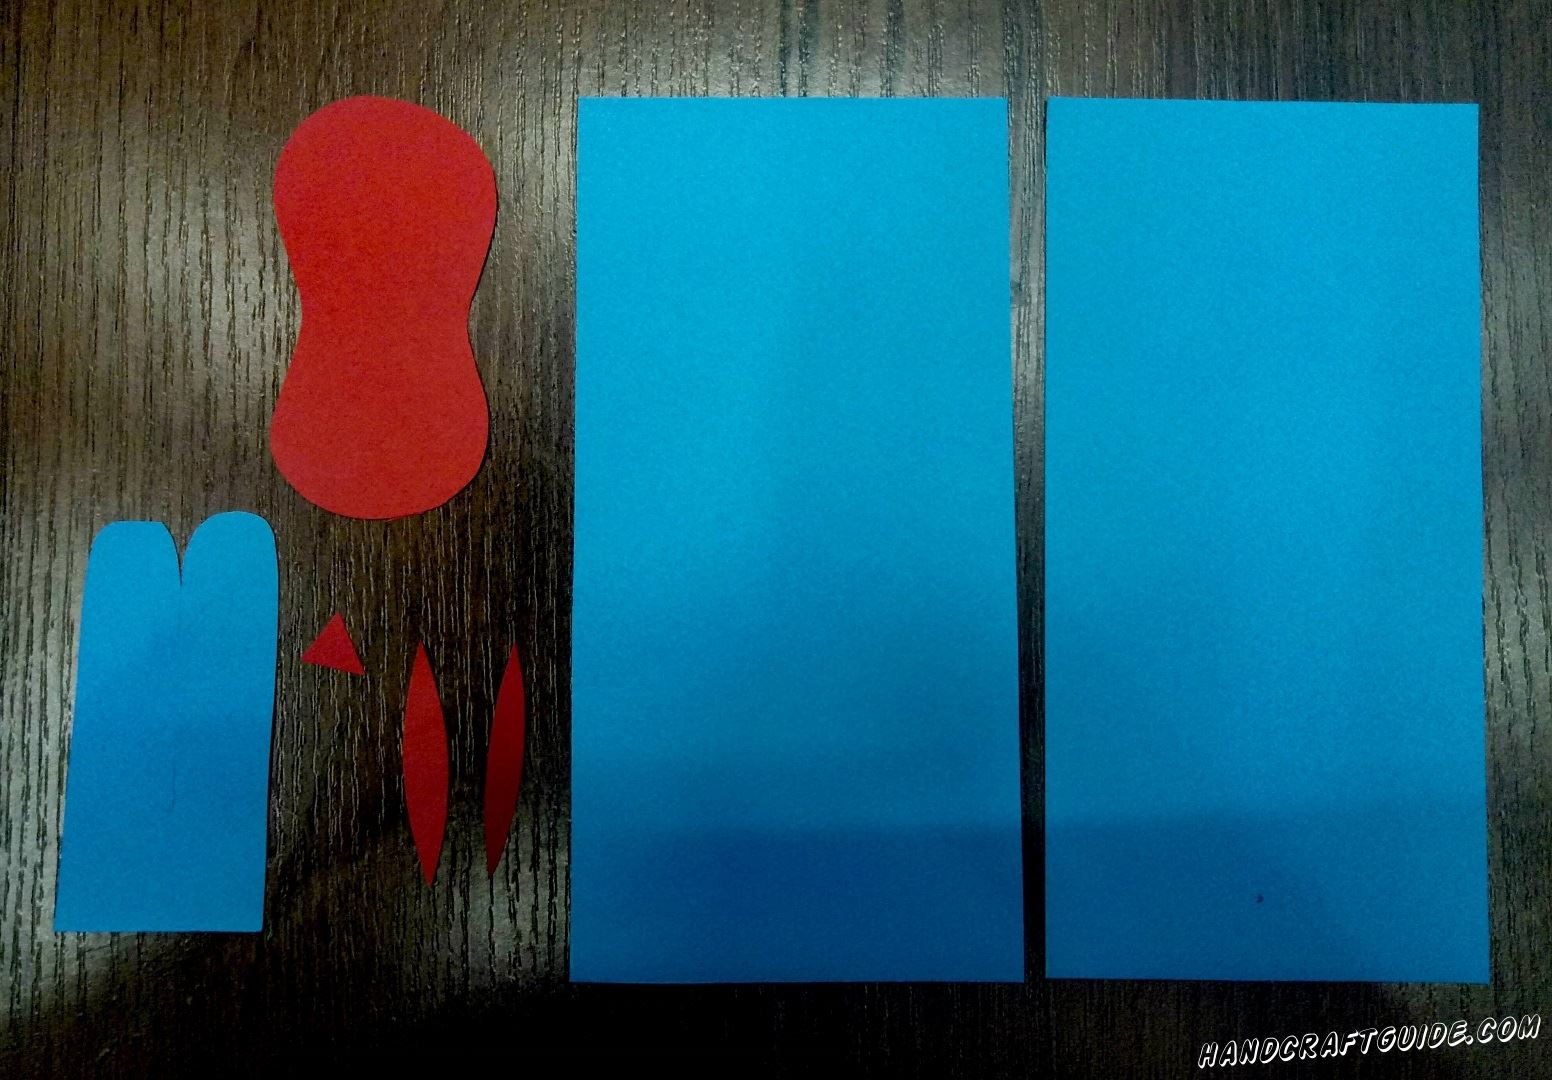 We cut the blue sheet A4 in half in length. Further parts as in the photo of blue and red paper.